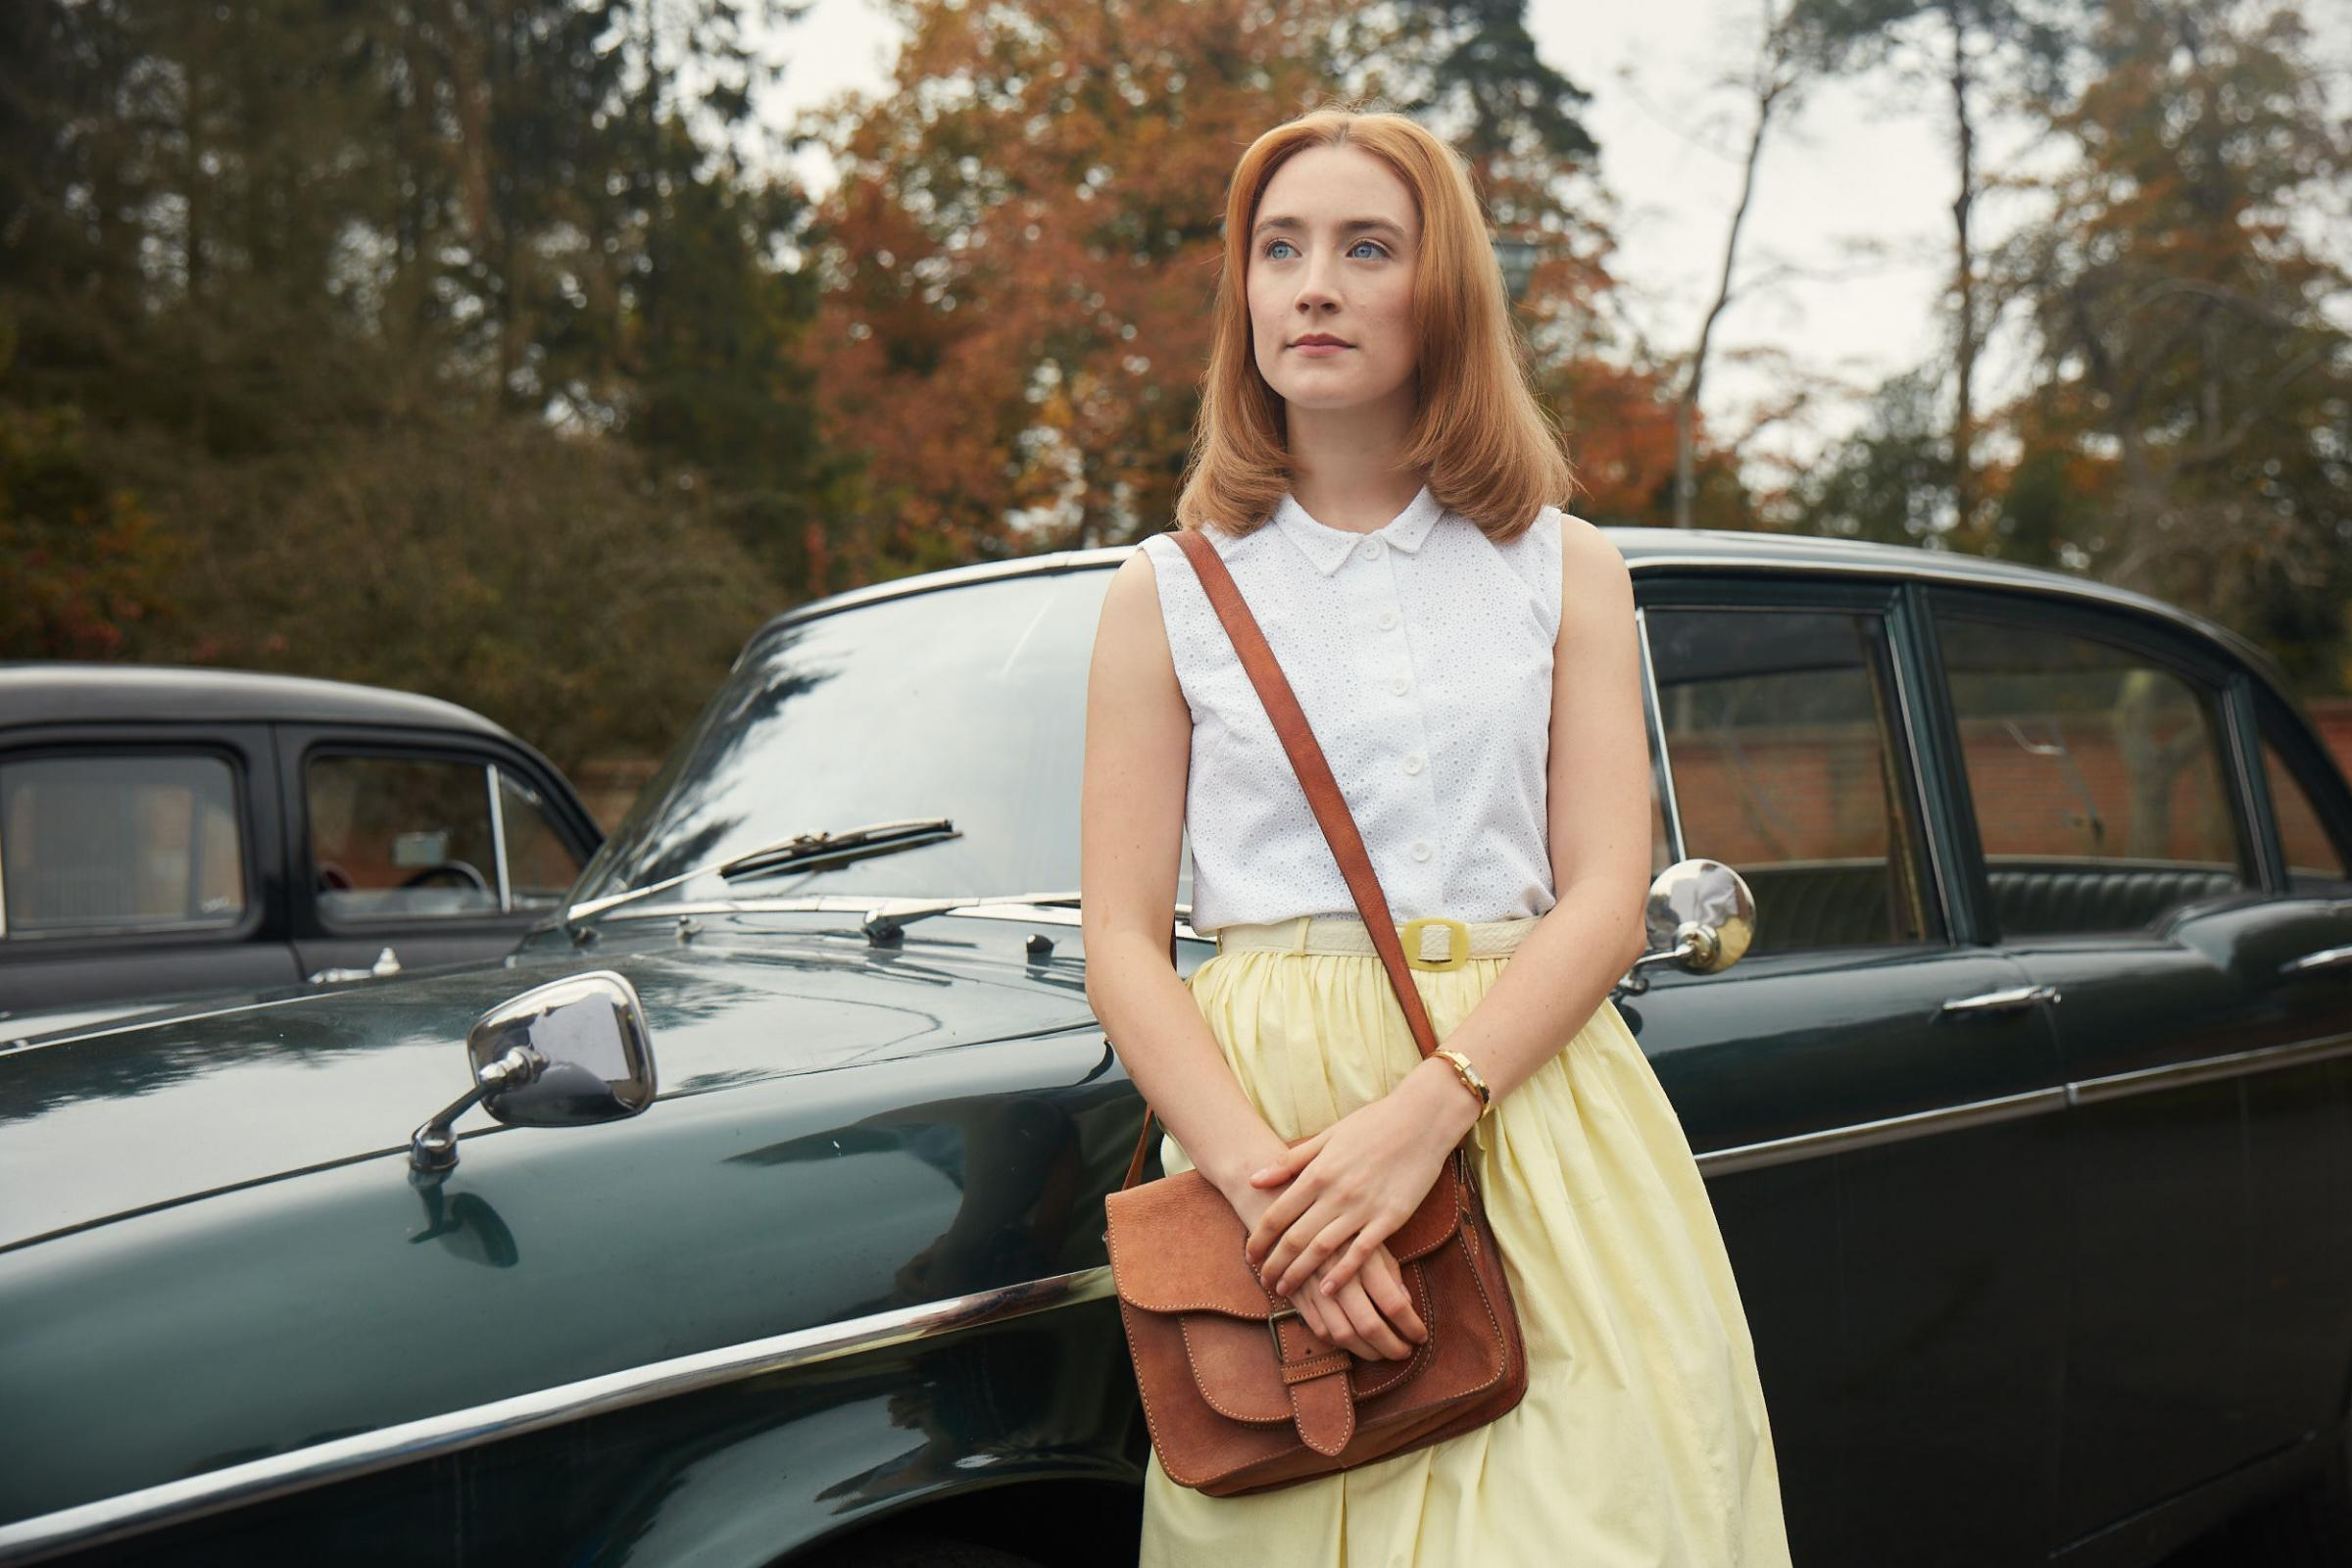 Undated film still handout from On Chesil Beach. Pictured: Saoirse Ronan as Florence Ponting. See PA Feature SHOWBIZ Film Chesil Beach. Picture credit should read: PA Photo/Lionsgate Films/Robert Viglasky. WARNING: This picture must only be used to accomp